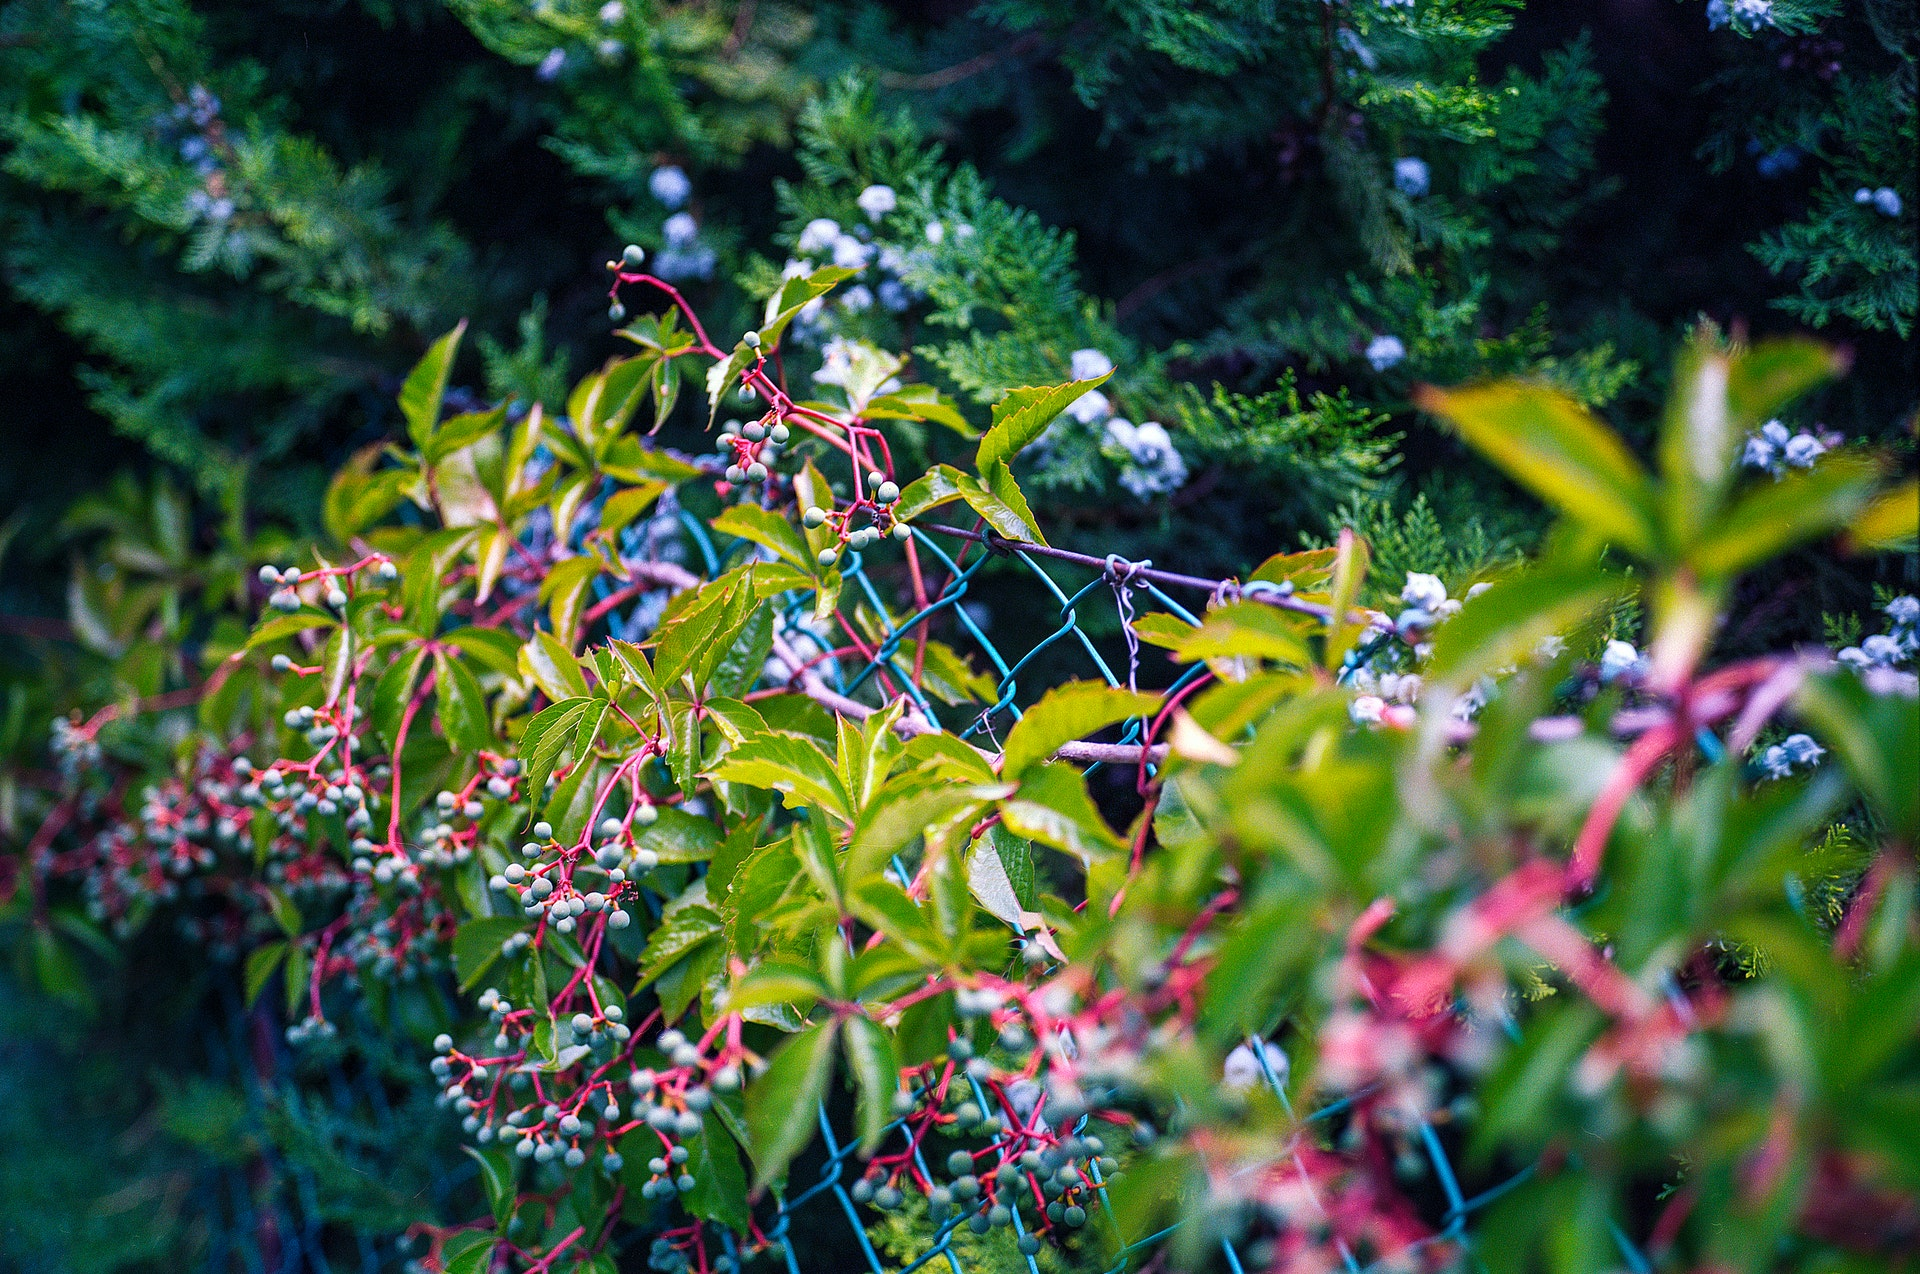 green-and-pink-leafy-plant-872474 1